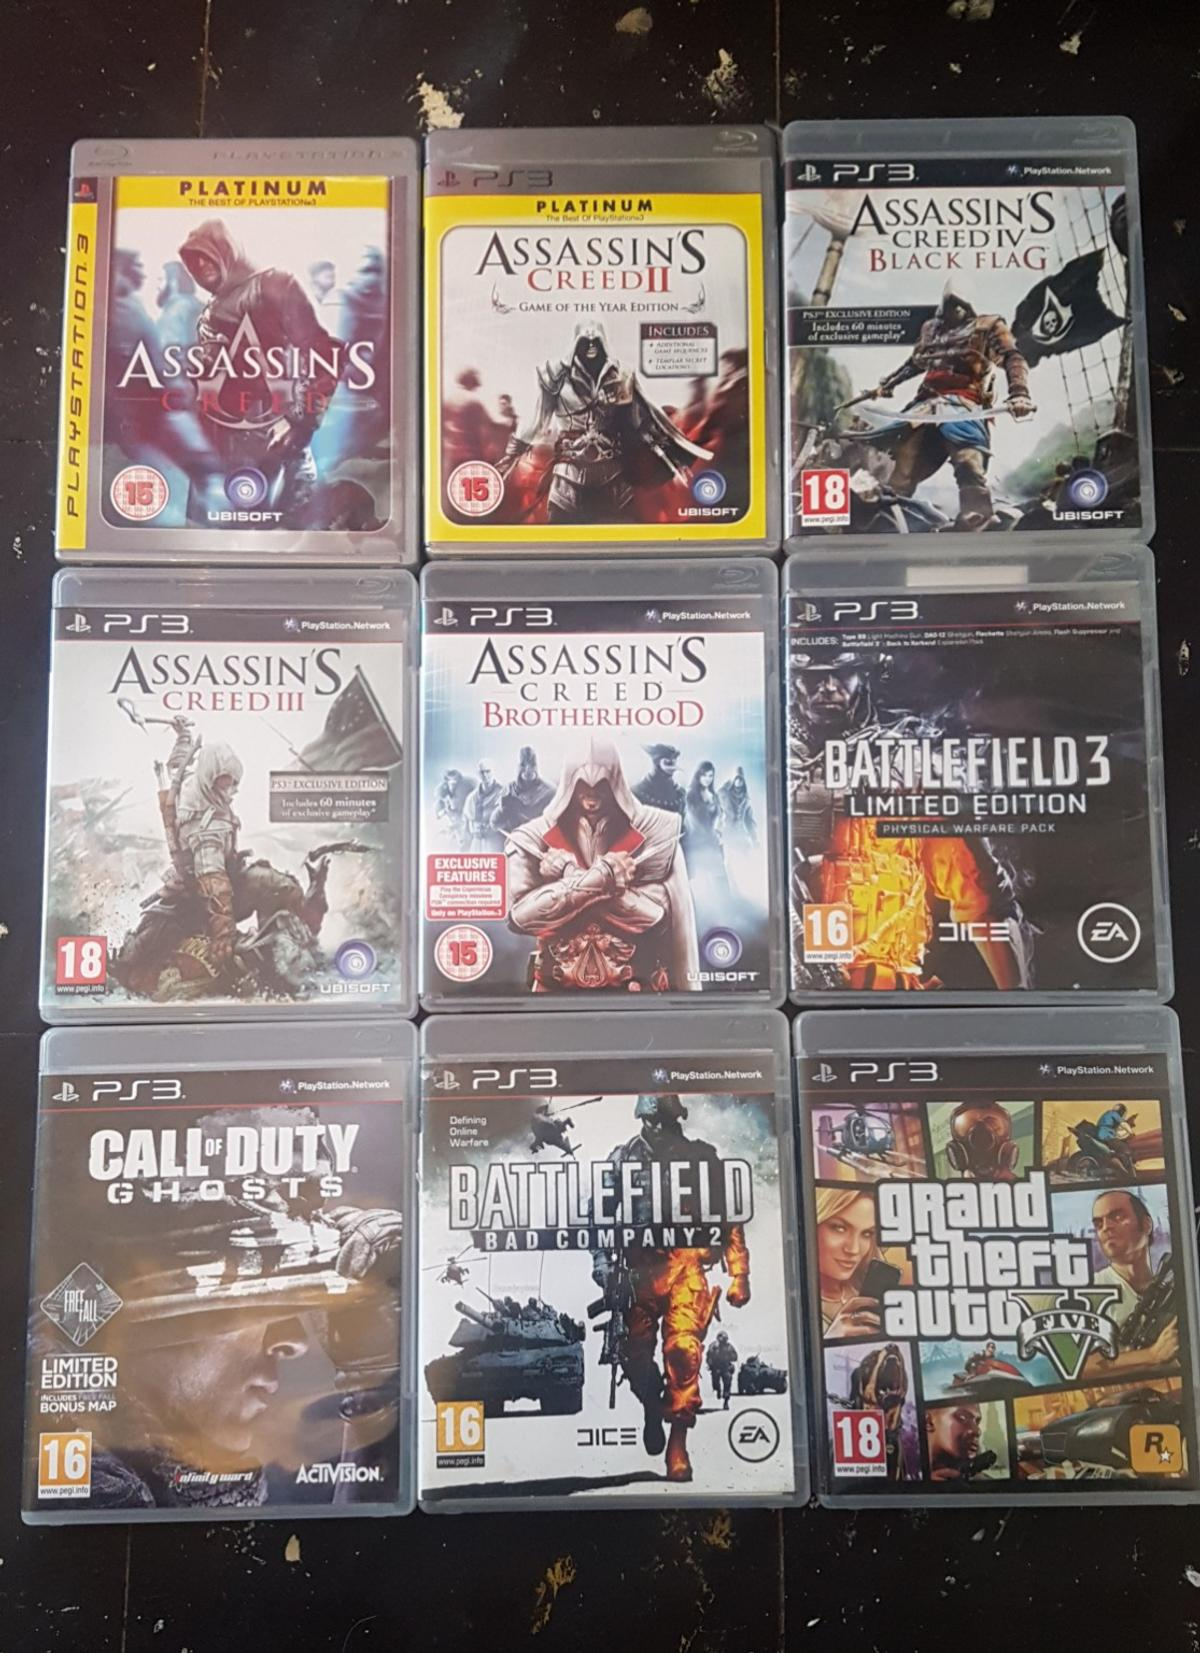 Ps3 games 2 for 20 lego lord of the rings video game part 2